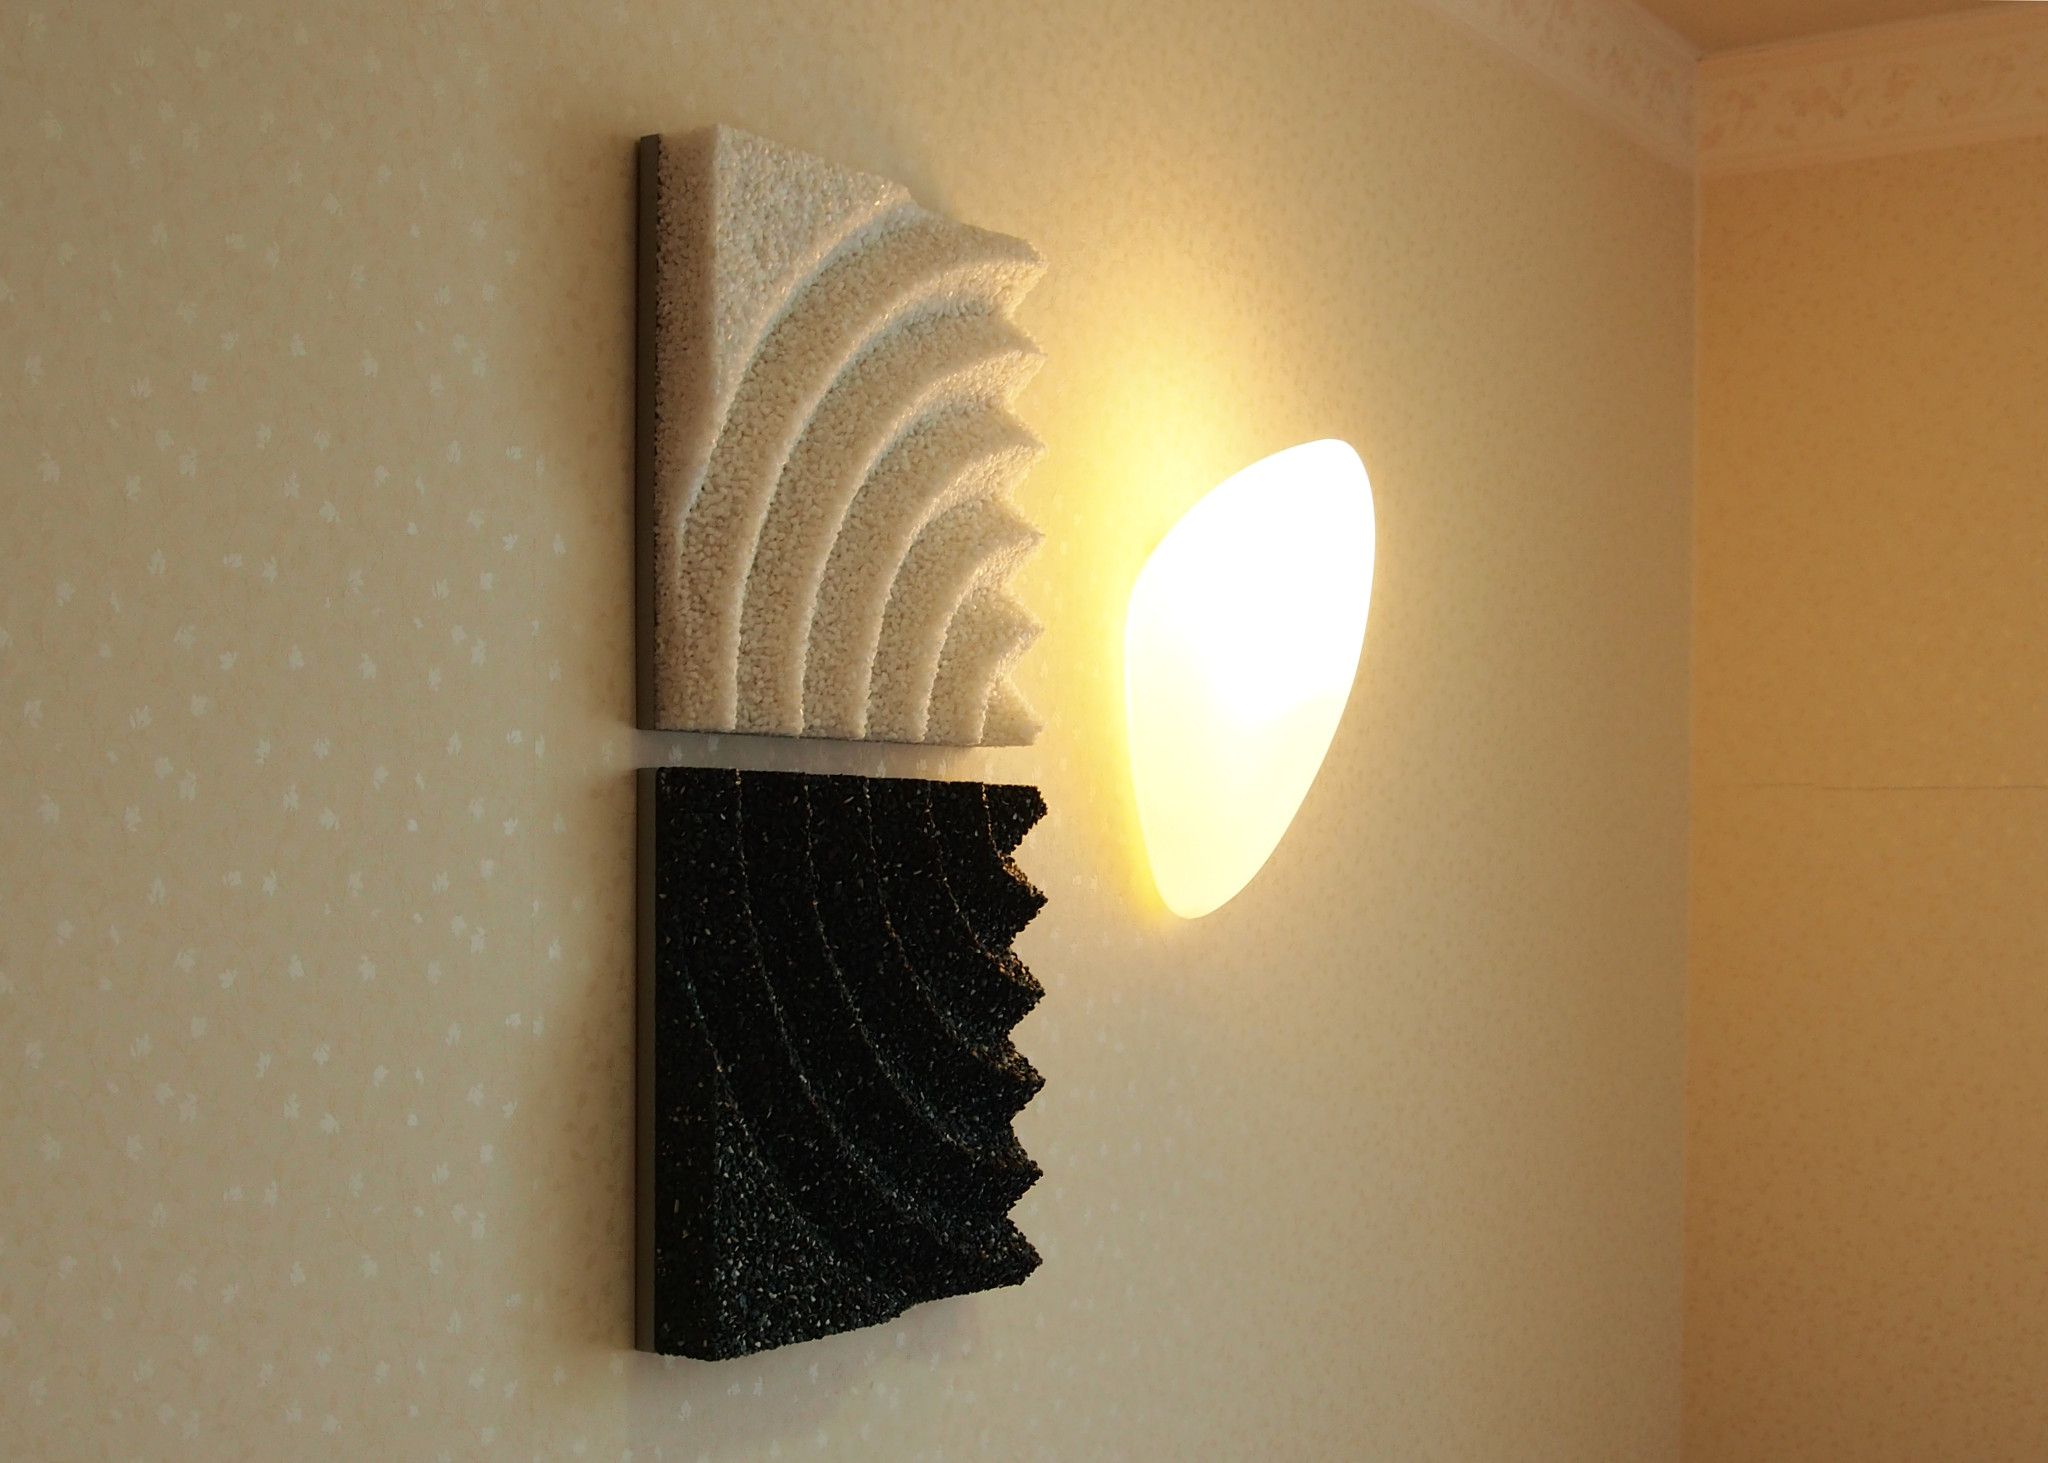 karesansui art wall decor